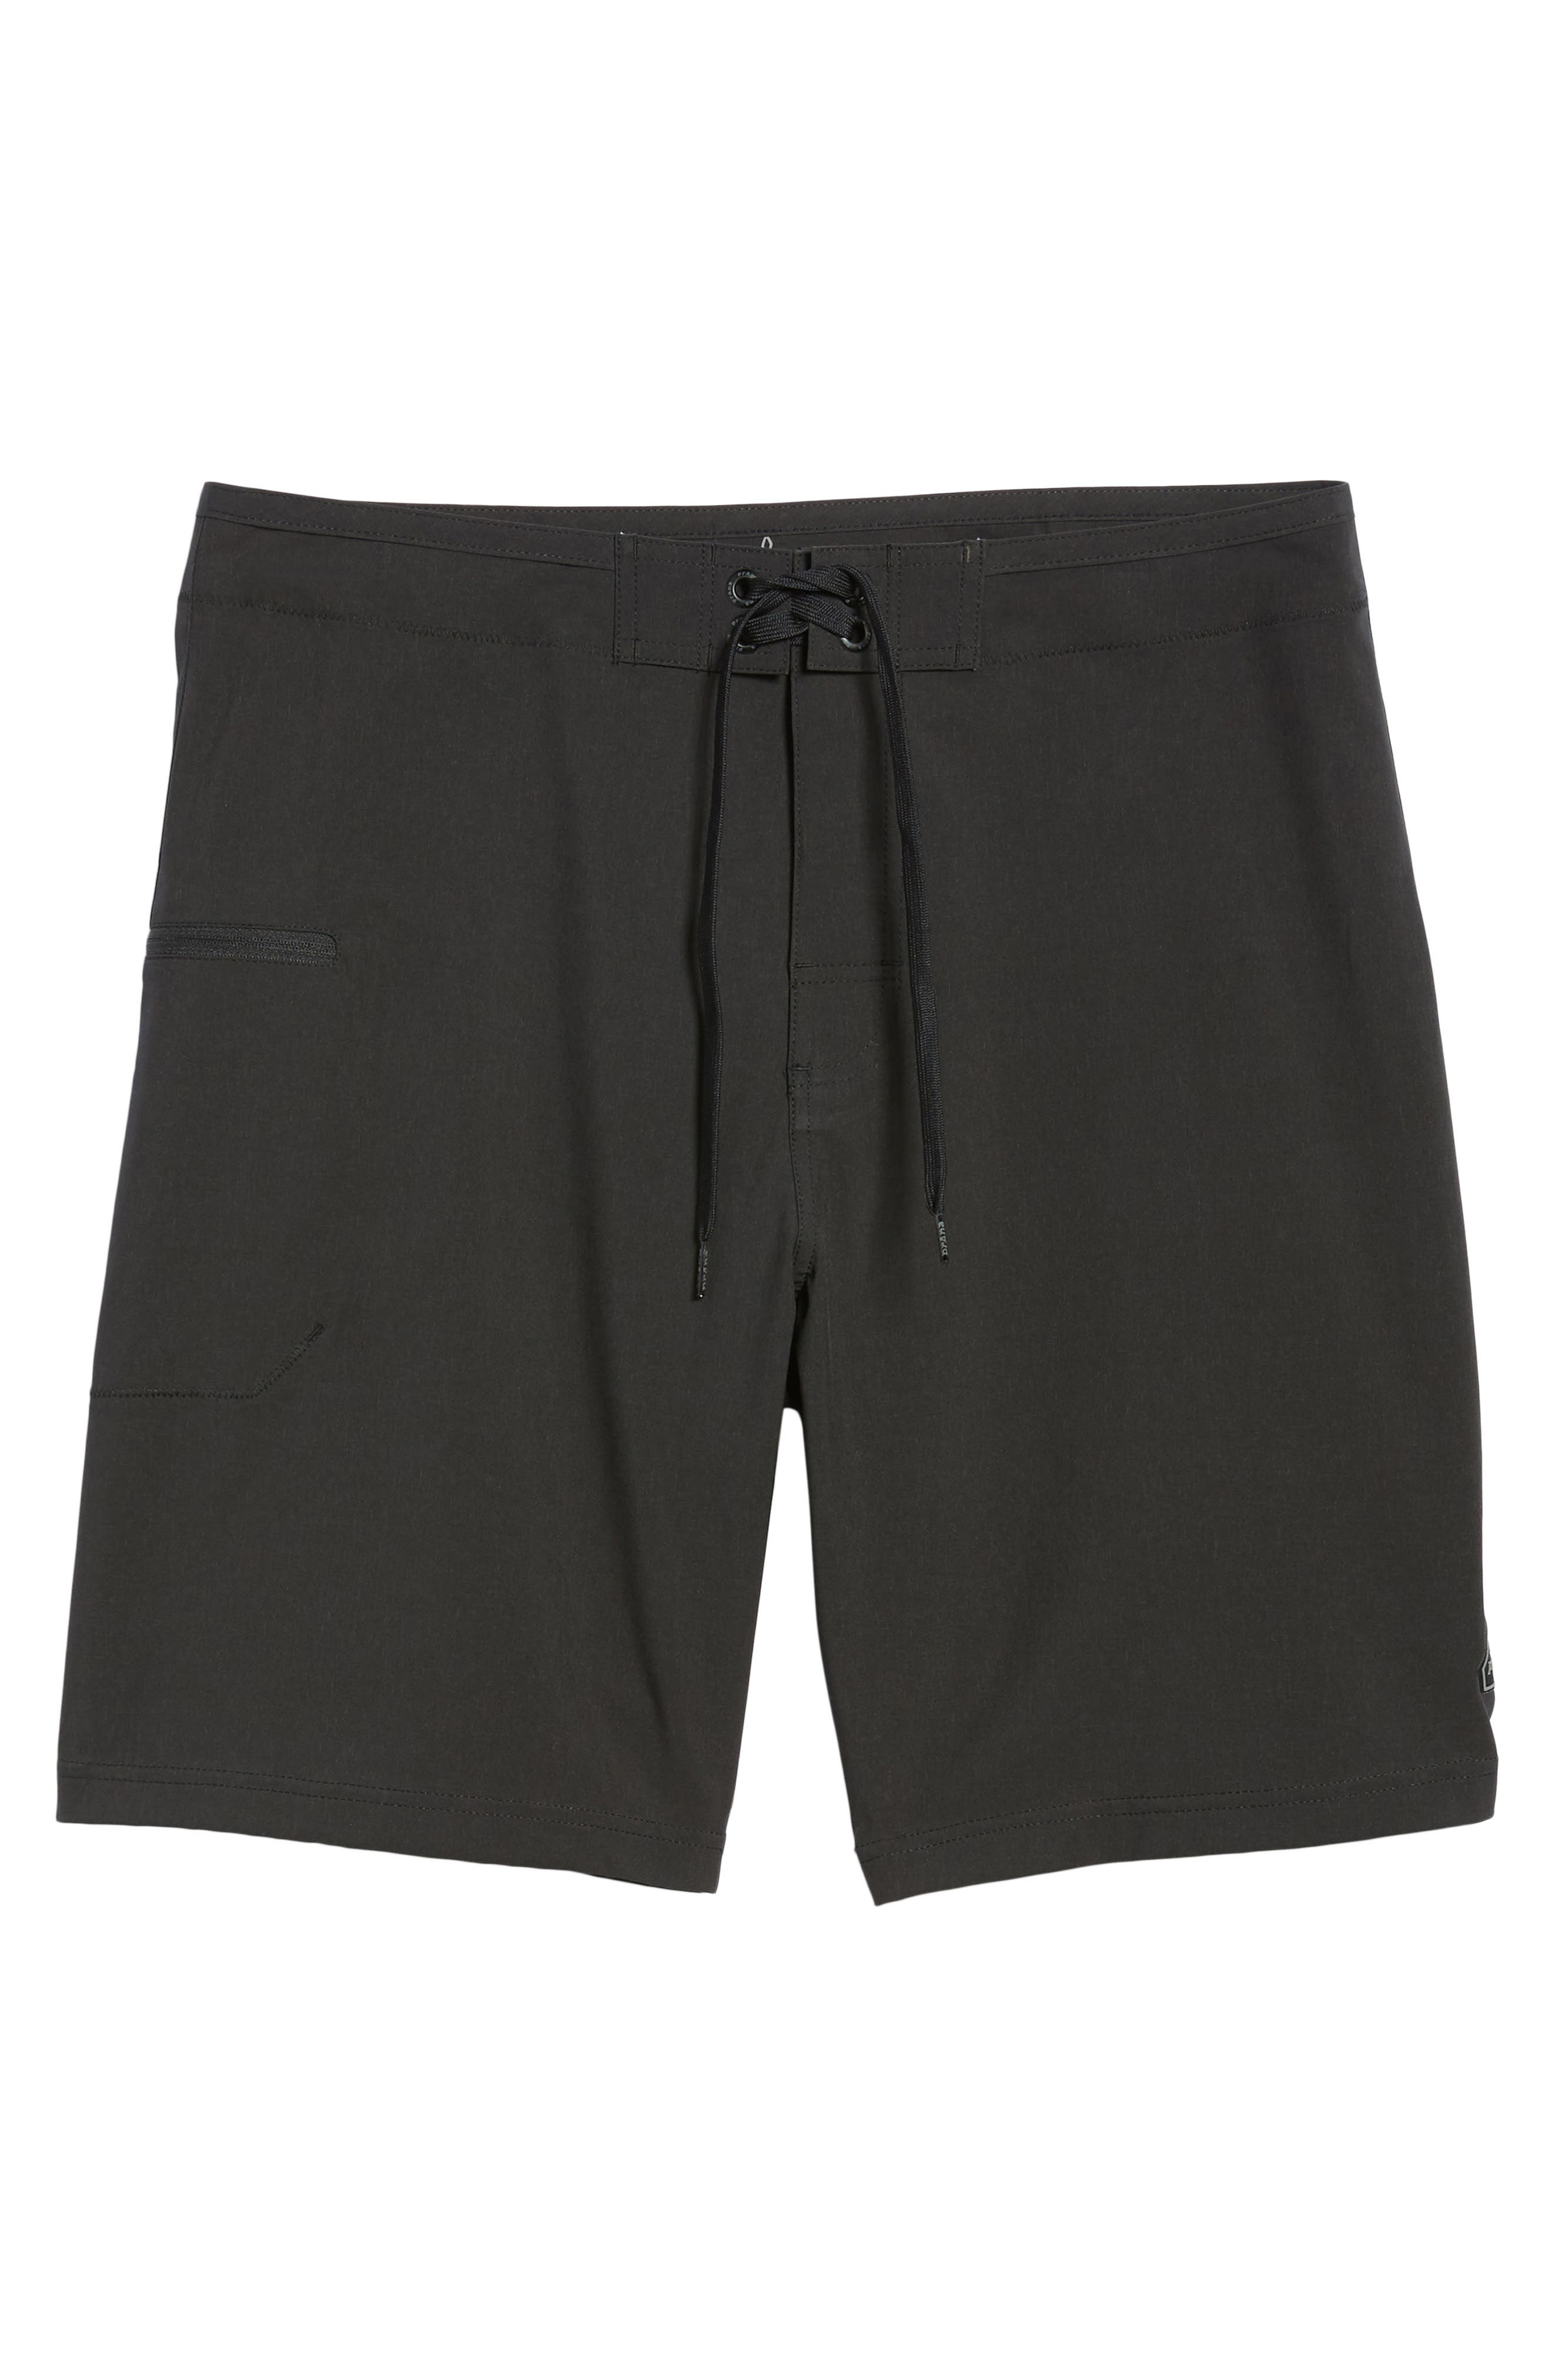 'Catalyst' Board Shorts,                             Alternate thumbnail 6, color,                             001